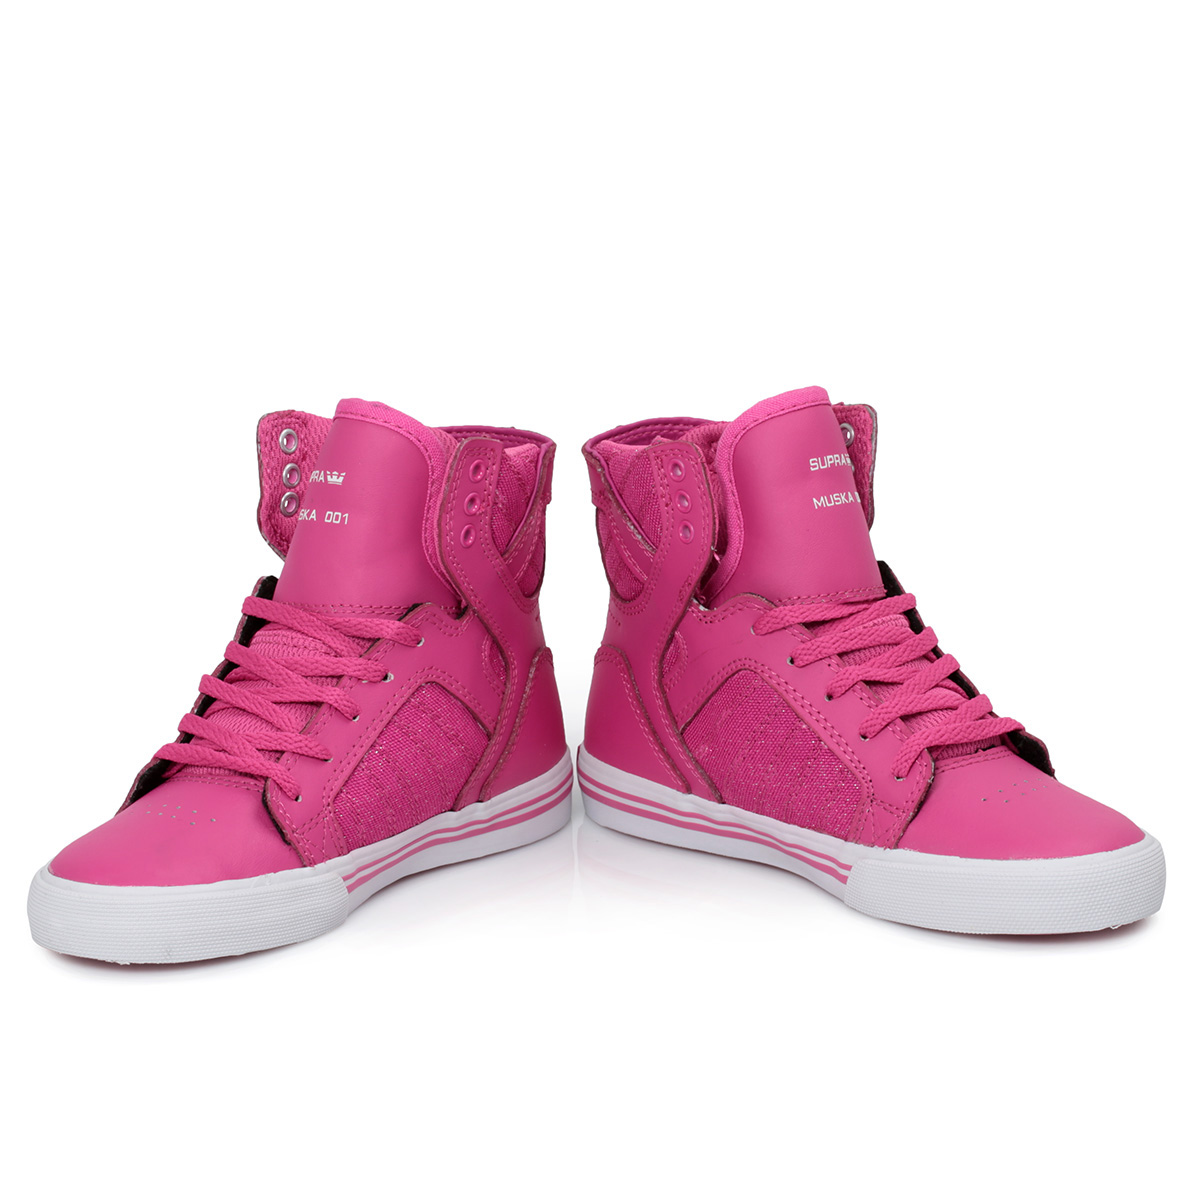 Find Big Kids Girls' High Top Shoes at coolzloadwok.ga Enjoy free shipping and returns with NikePlus.